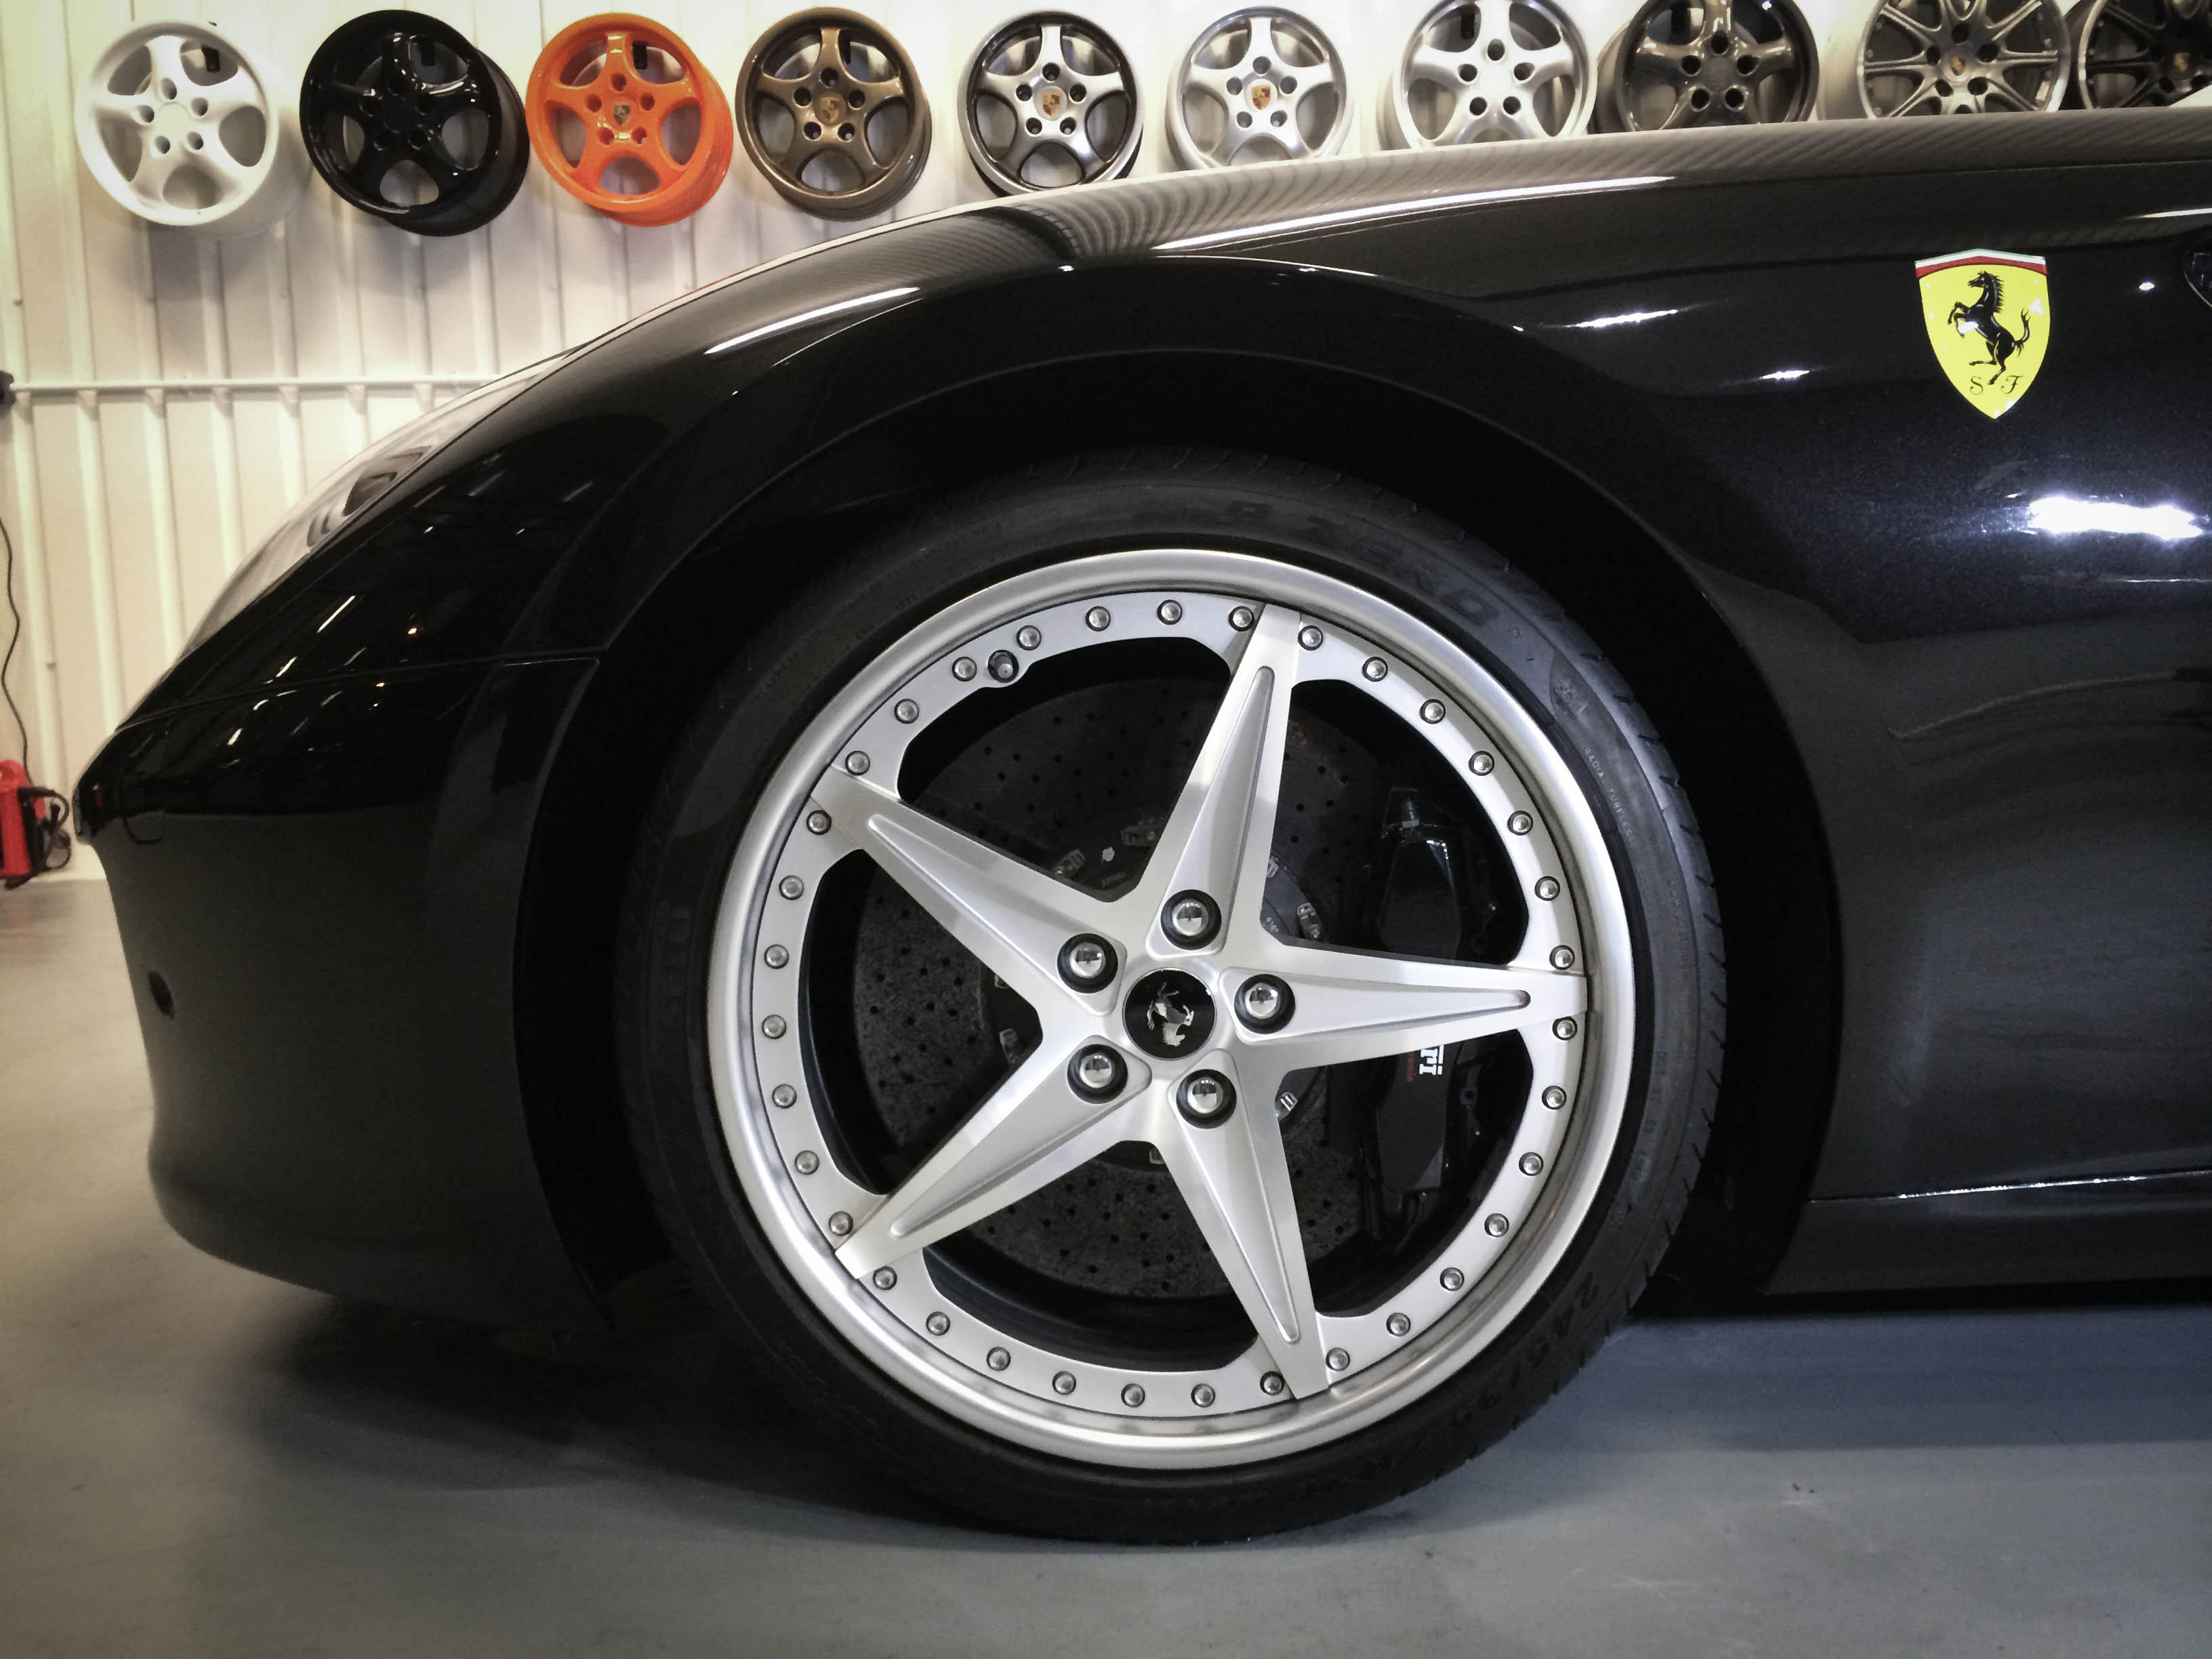 Ferrari-599-GTB – wheel detail